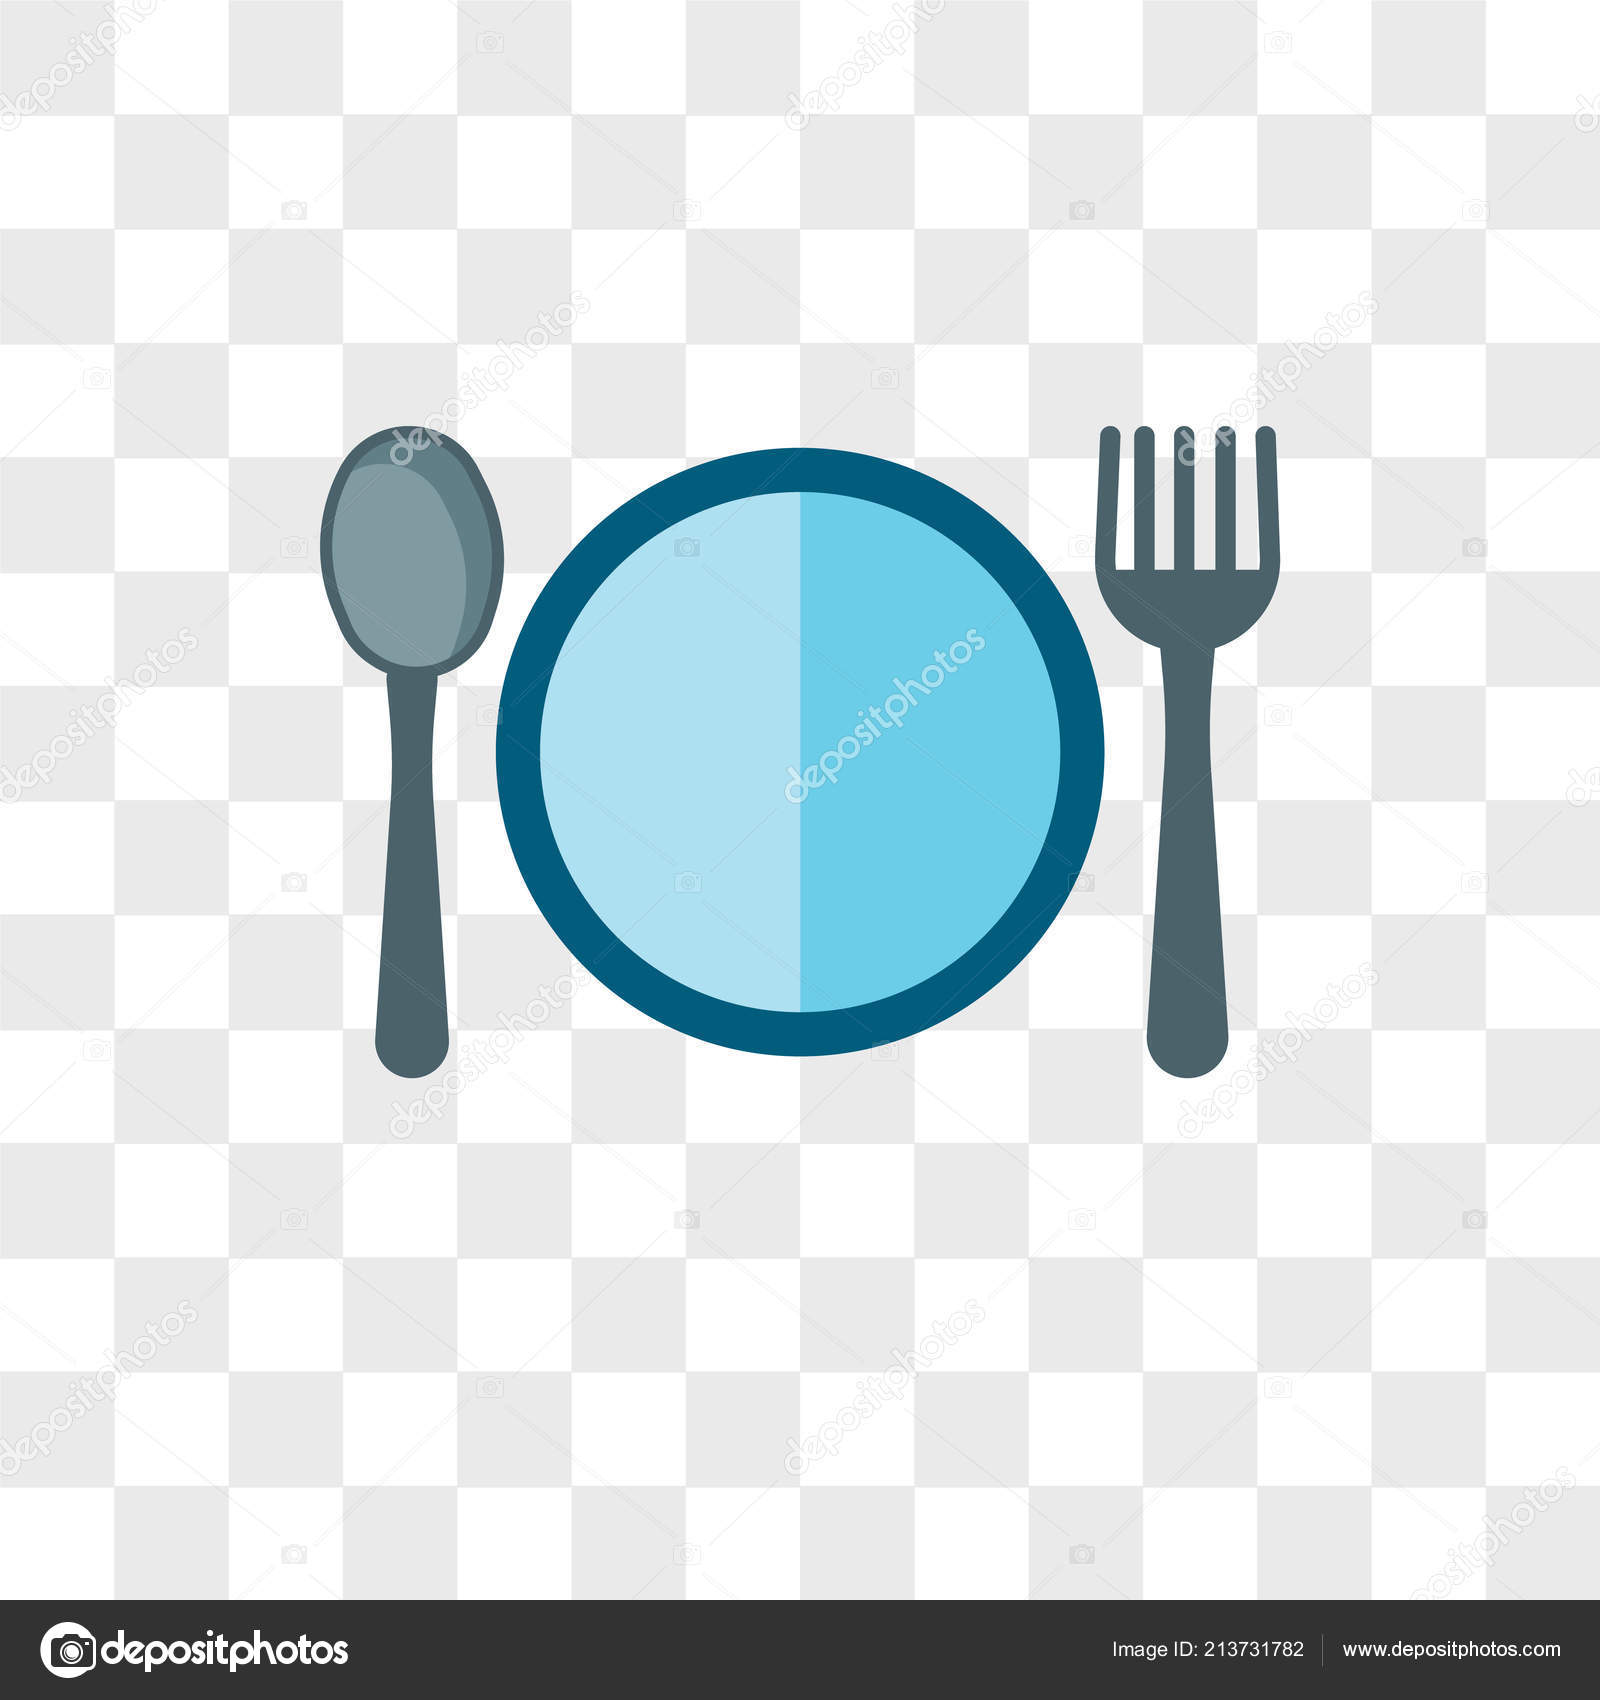 Food vector icon isolated on transparent background, Food